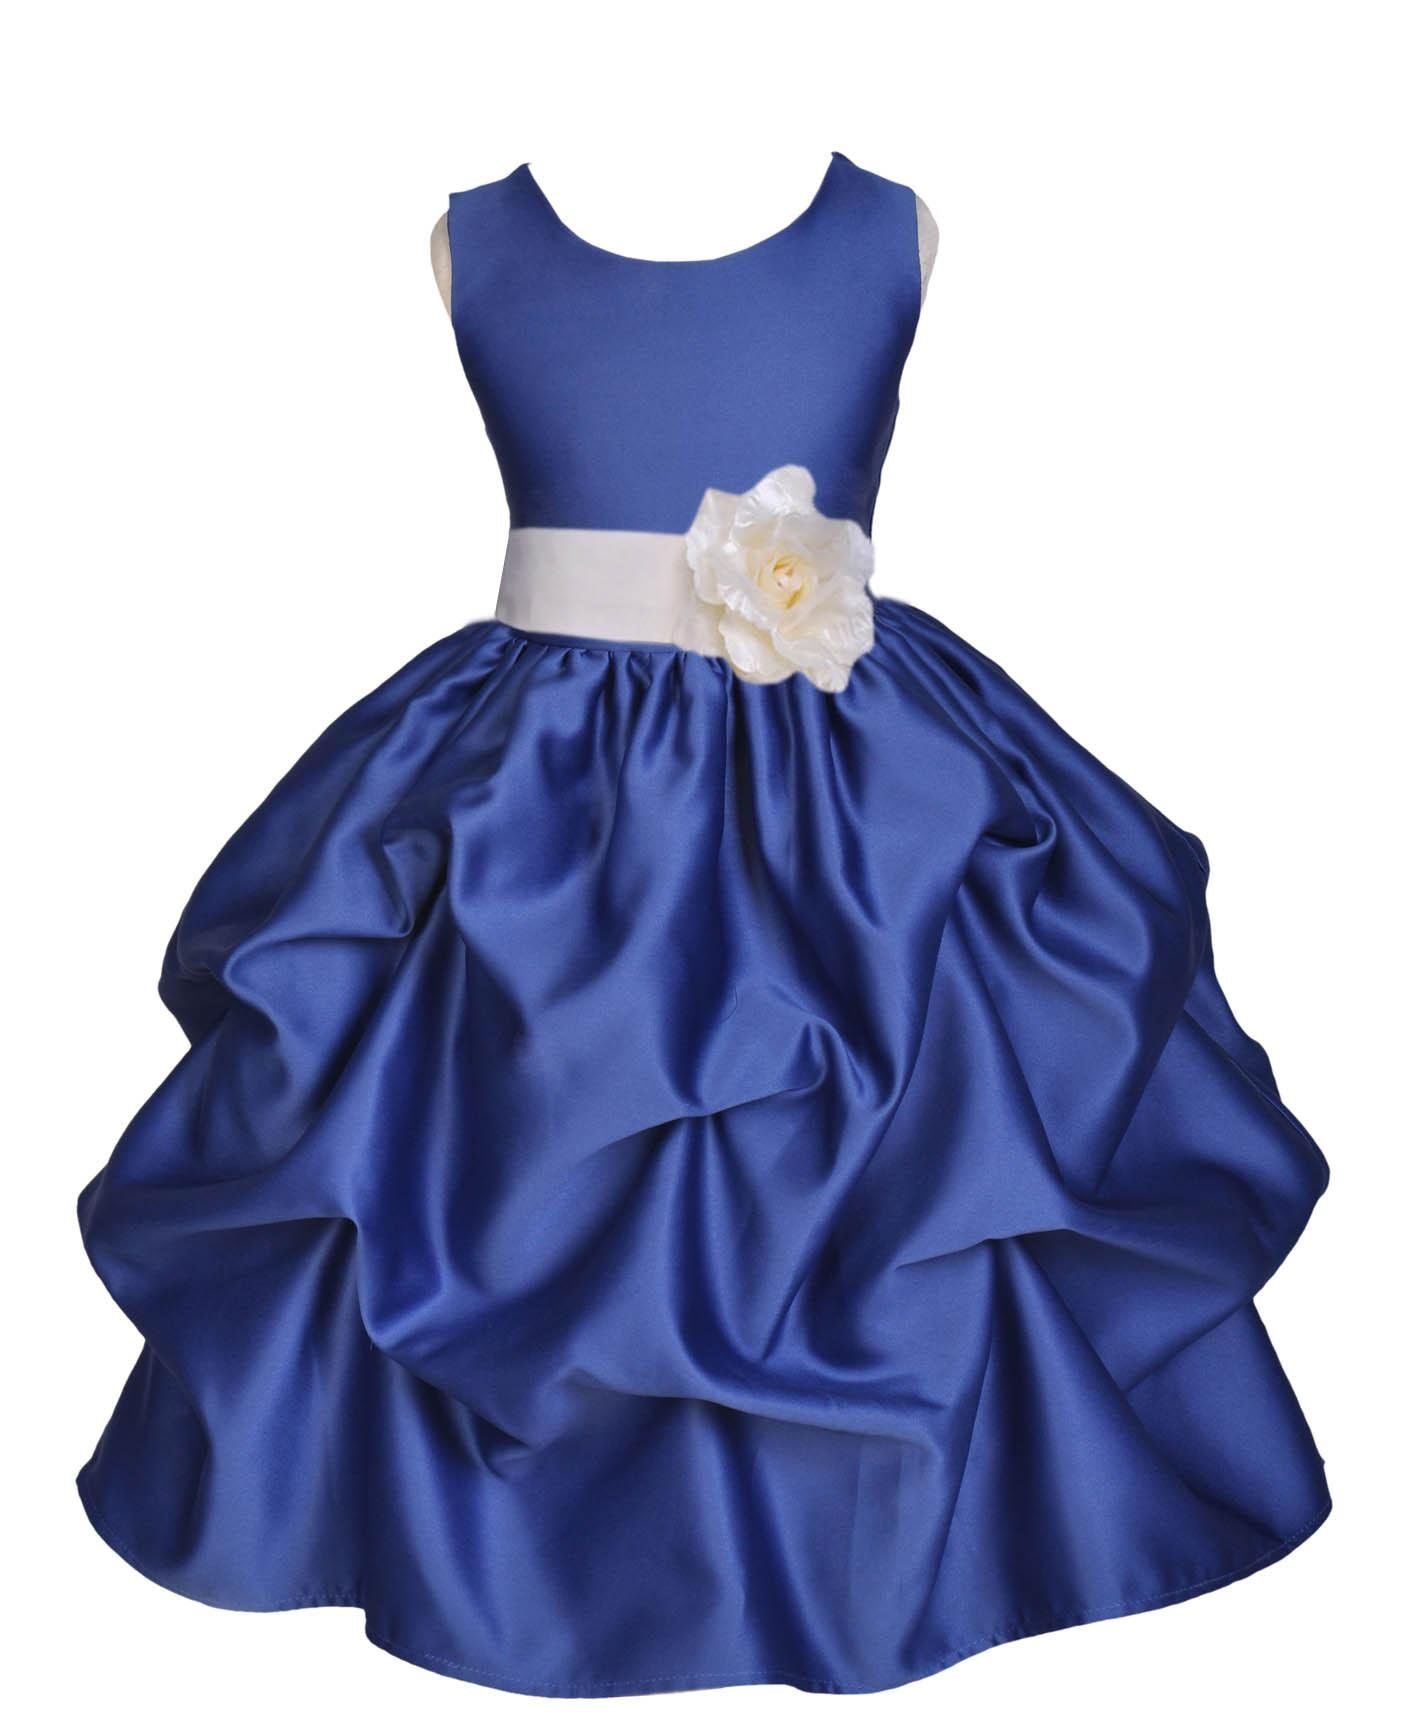 Tiaobug Girls Flower Girl Dress Princess Wedding Party Dresses Pageant Holiday Crossed Back Lace Formal Tulle Flower Girl Dress Moderate Price Weddings & Events Wedding Party Dress